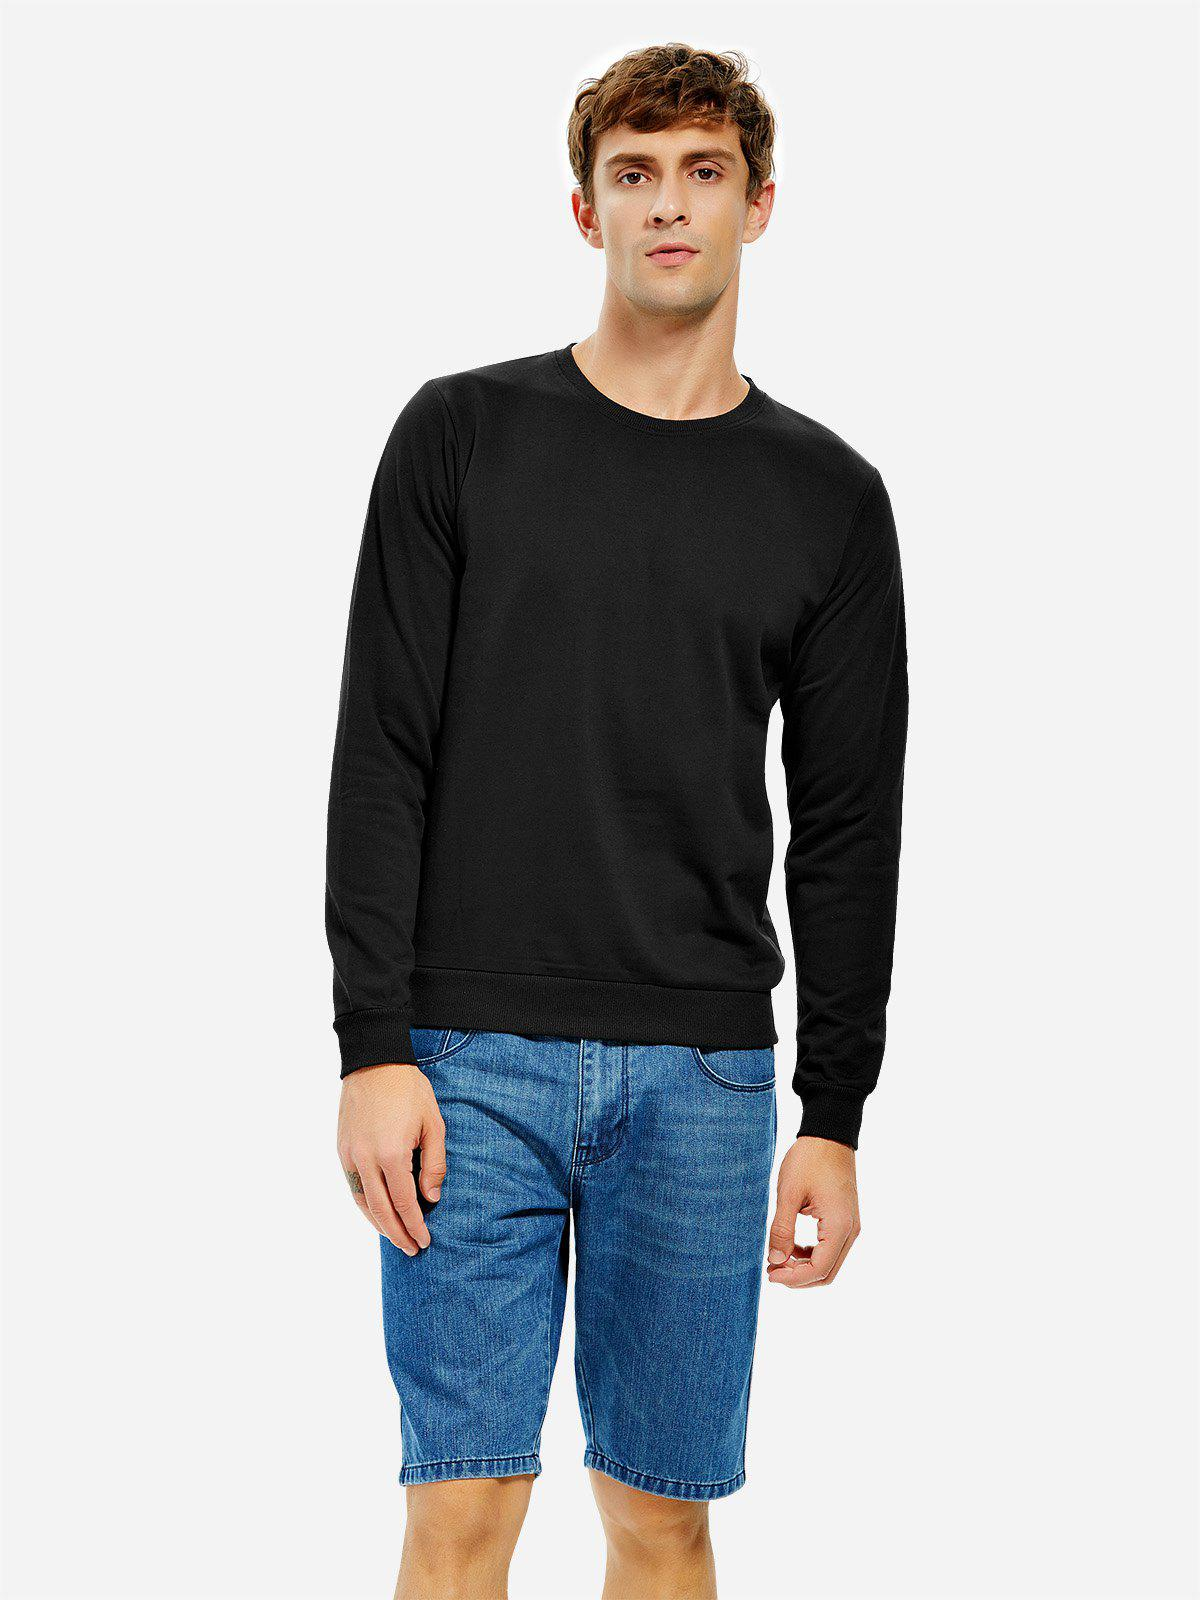 ZAN.STYLE Round Neck Sweatshirt - BLACK 2XL